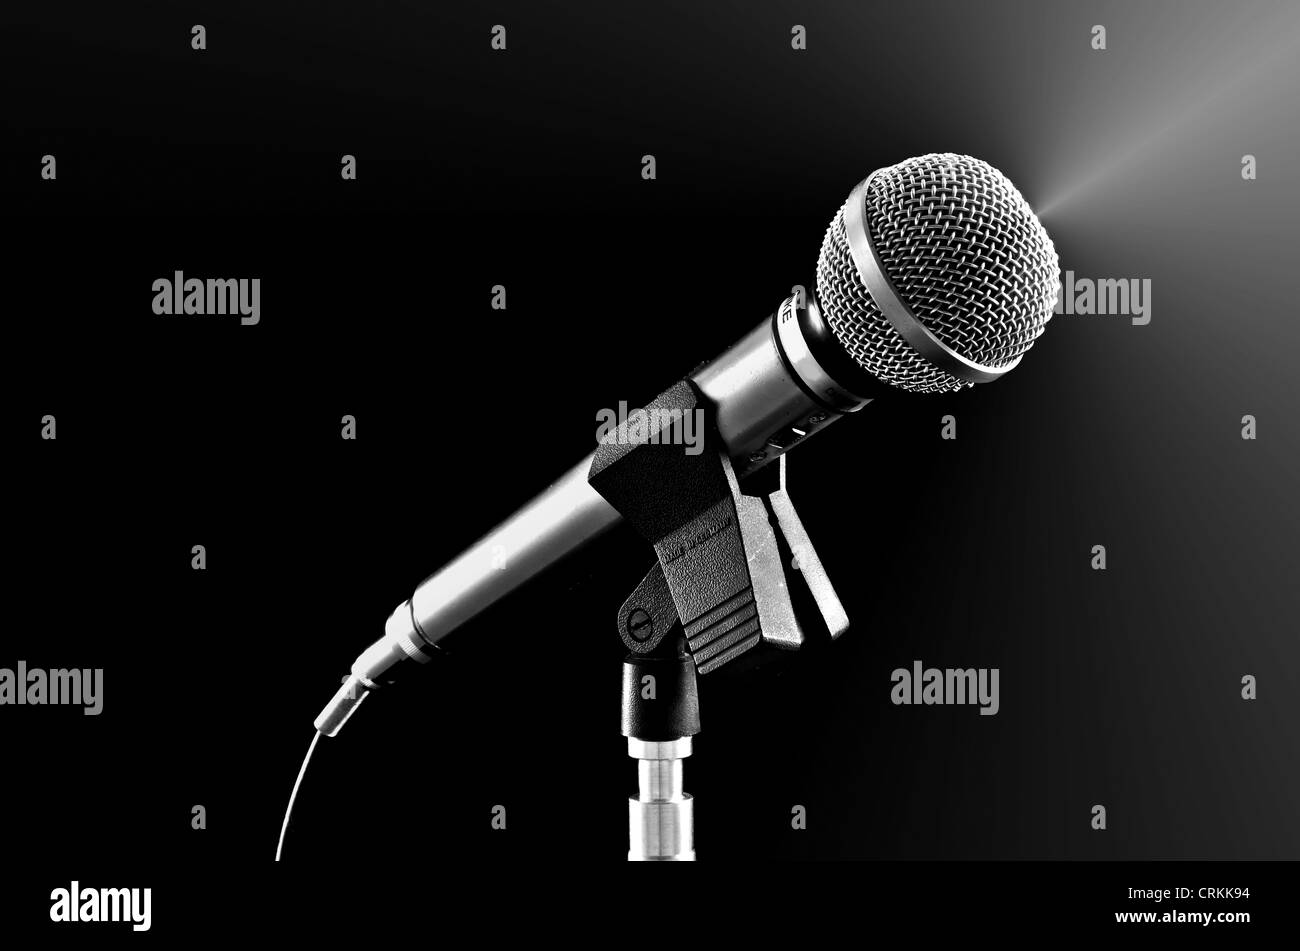 Silvery microphone on black - Stock Image